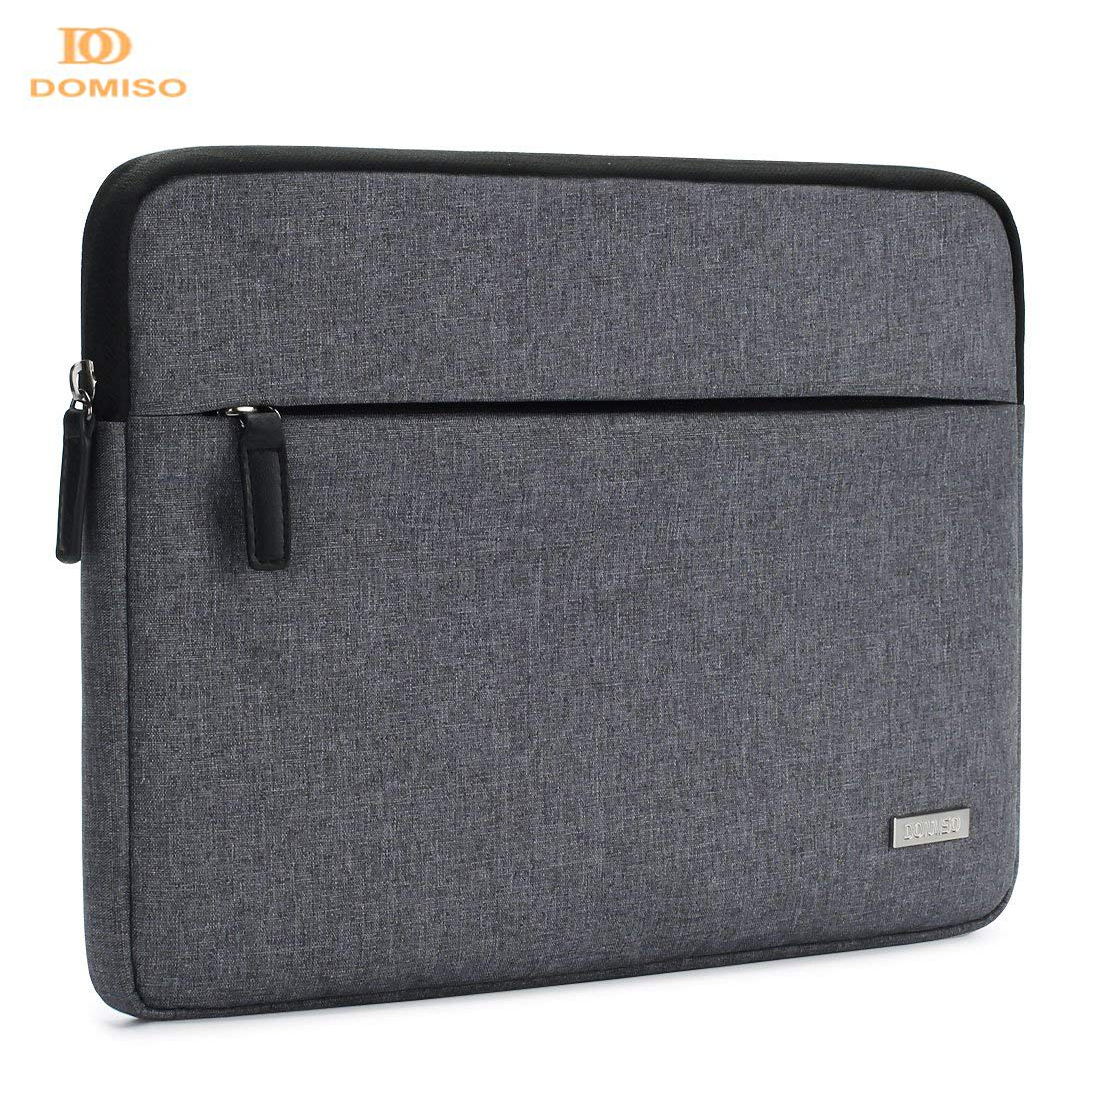 DOMISO Canvas Shockproof 10 11 13 14 15.6 Inch Laptop Sleeve Tablet Protective Case Anti-shock Padding Computer Bag Blue Grey